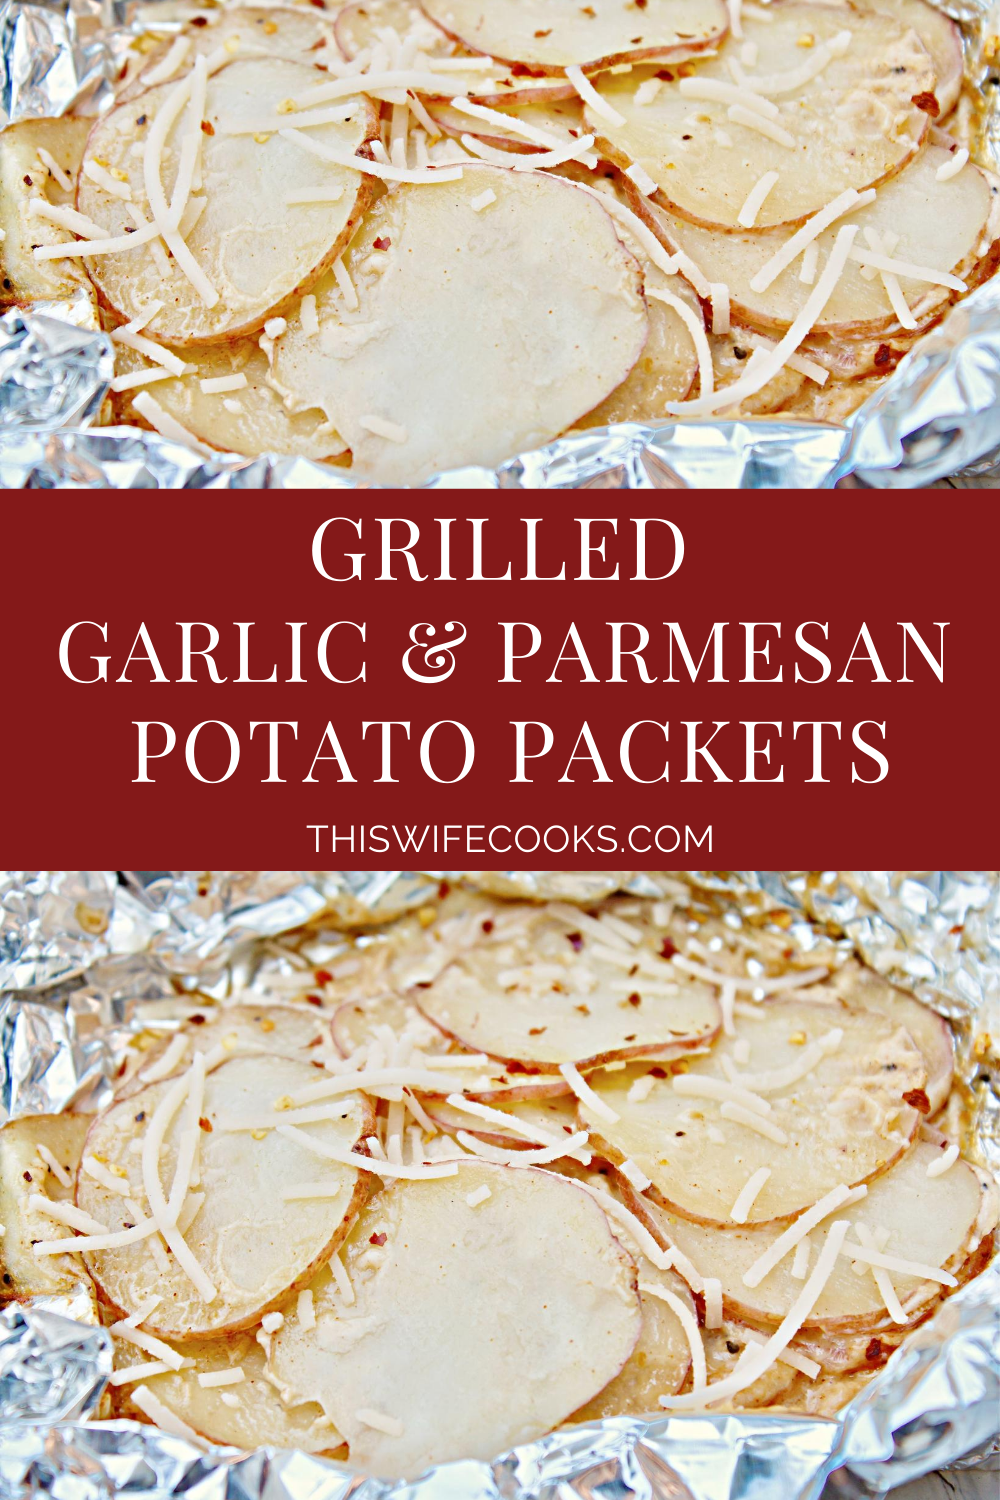 Grilled Garlic and Parmesan Potato Packets ~ Grilled potato foil packets are perfect for camping! They're portable and can be prepped in minutes. You can even assemble the packets a day in advance before putting them on the grill. via @thiswifecooks